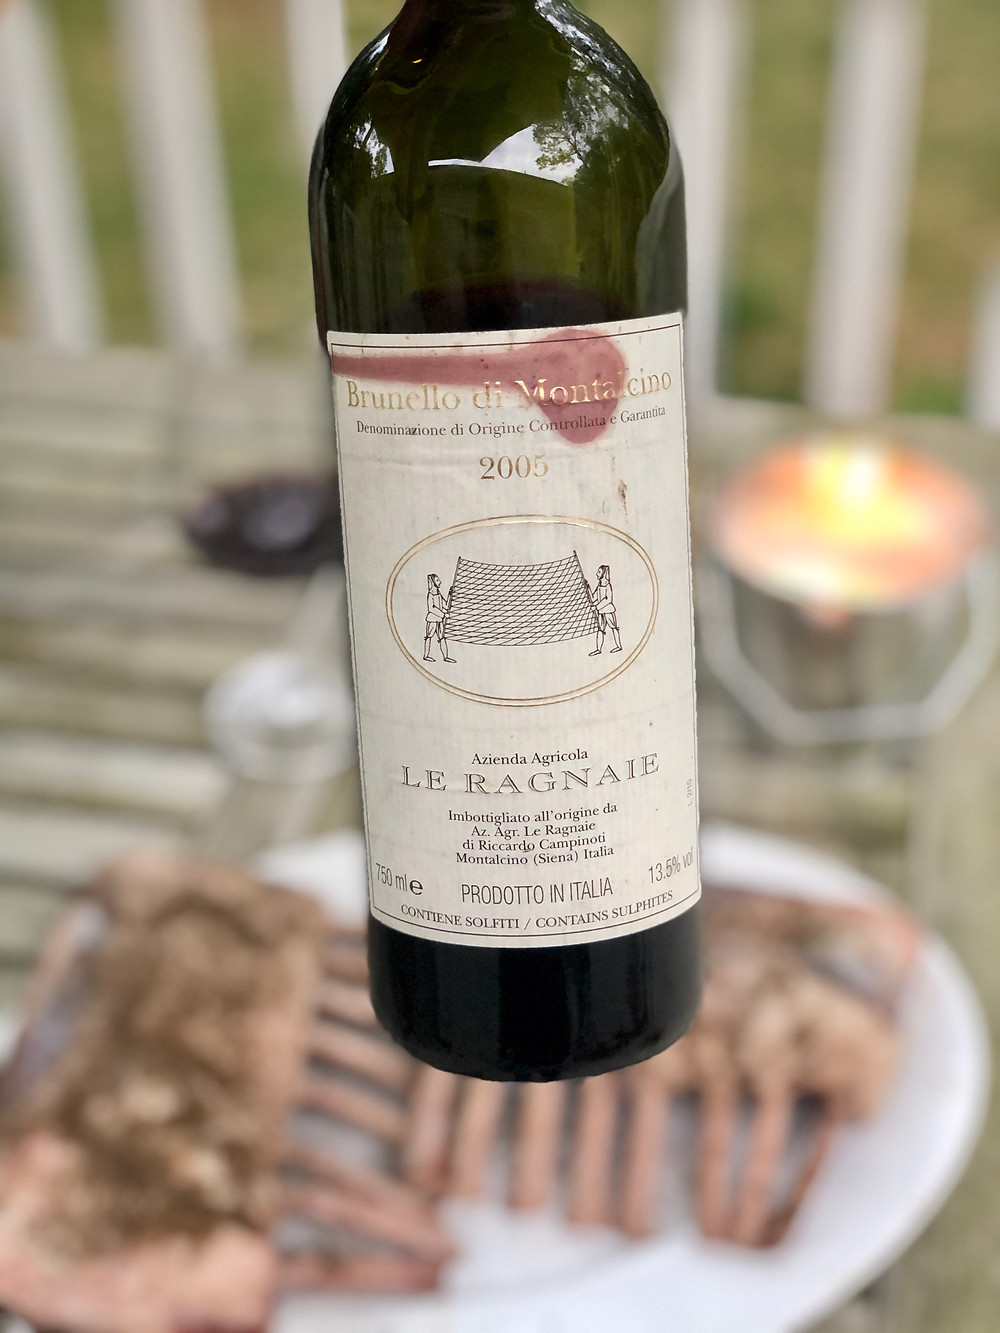 Le Ragnaie Brunello di Montalcino with grilled rack of lamb